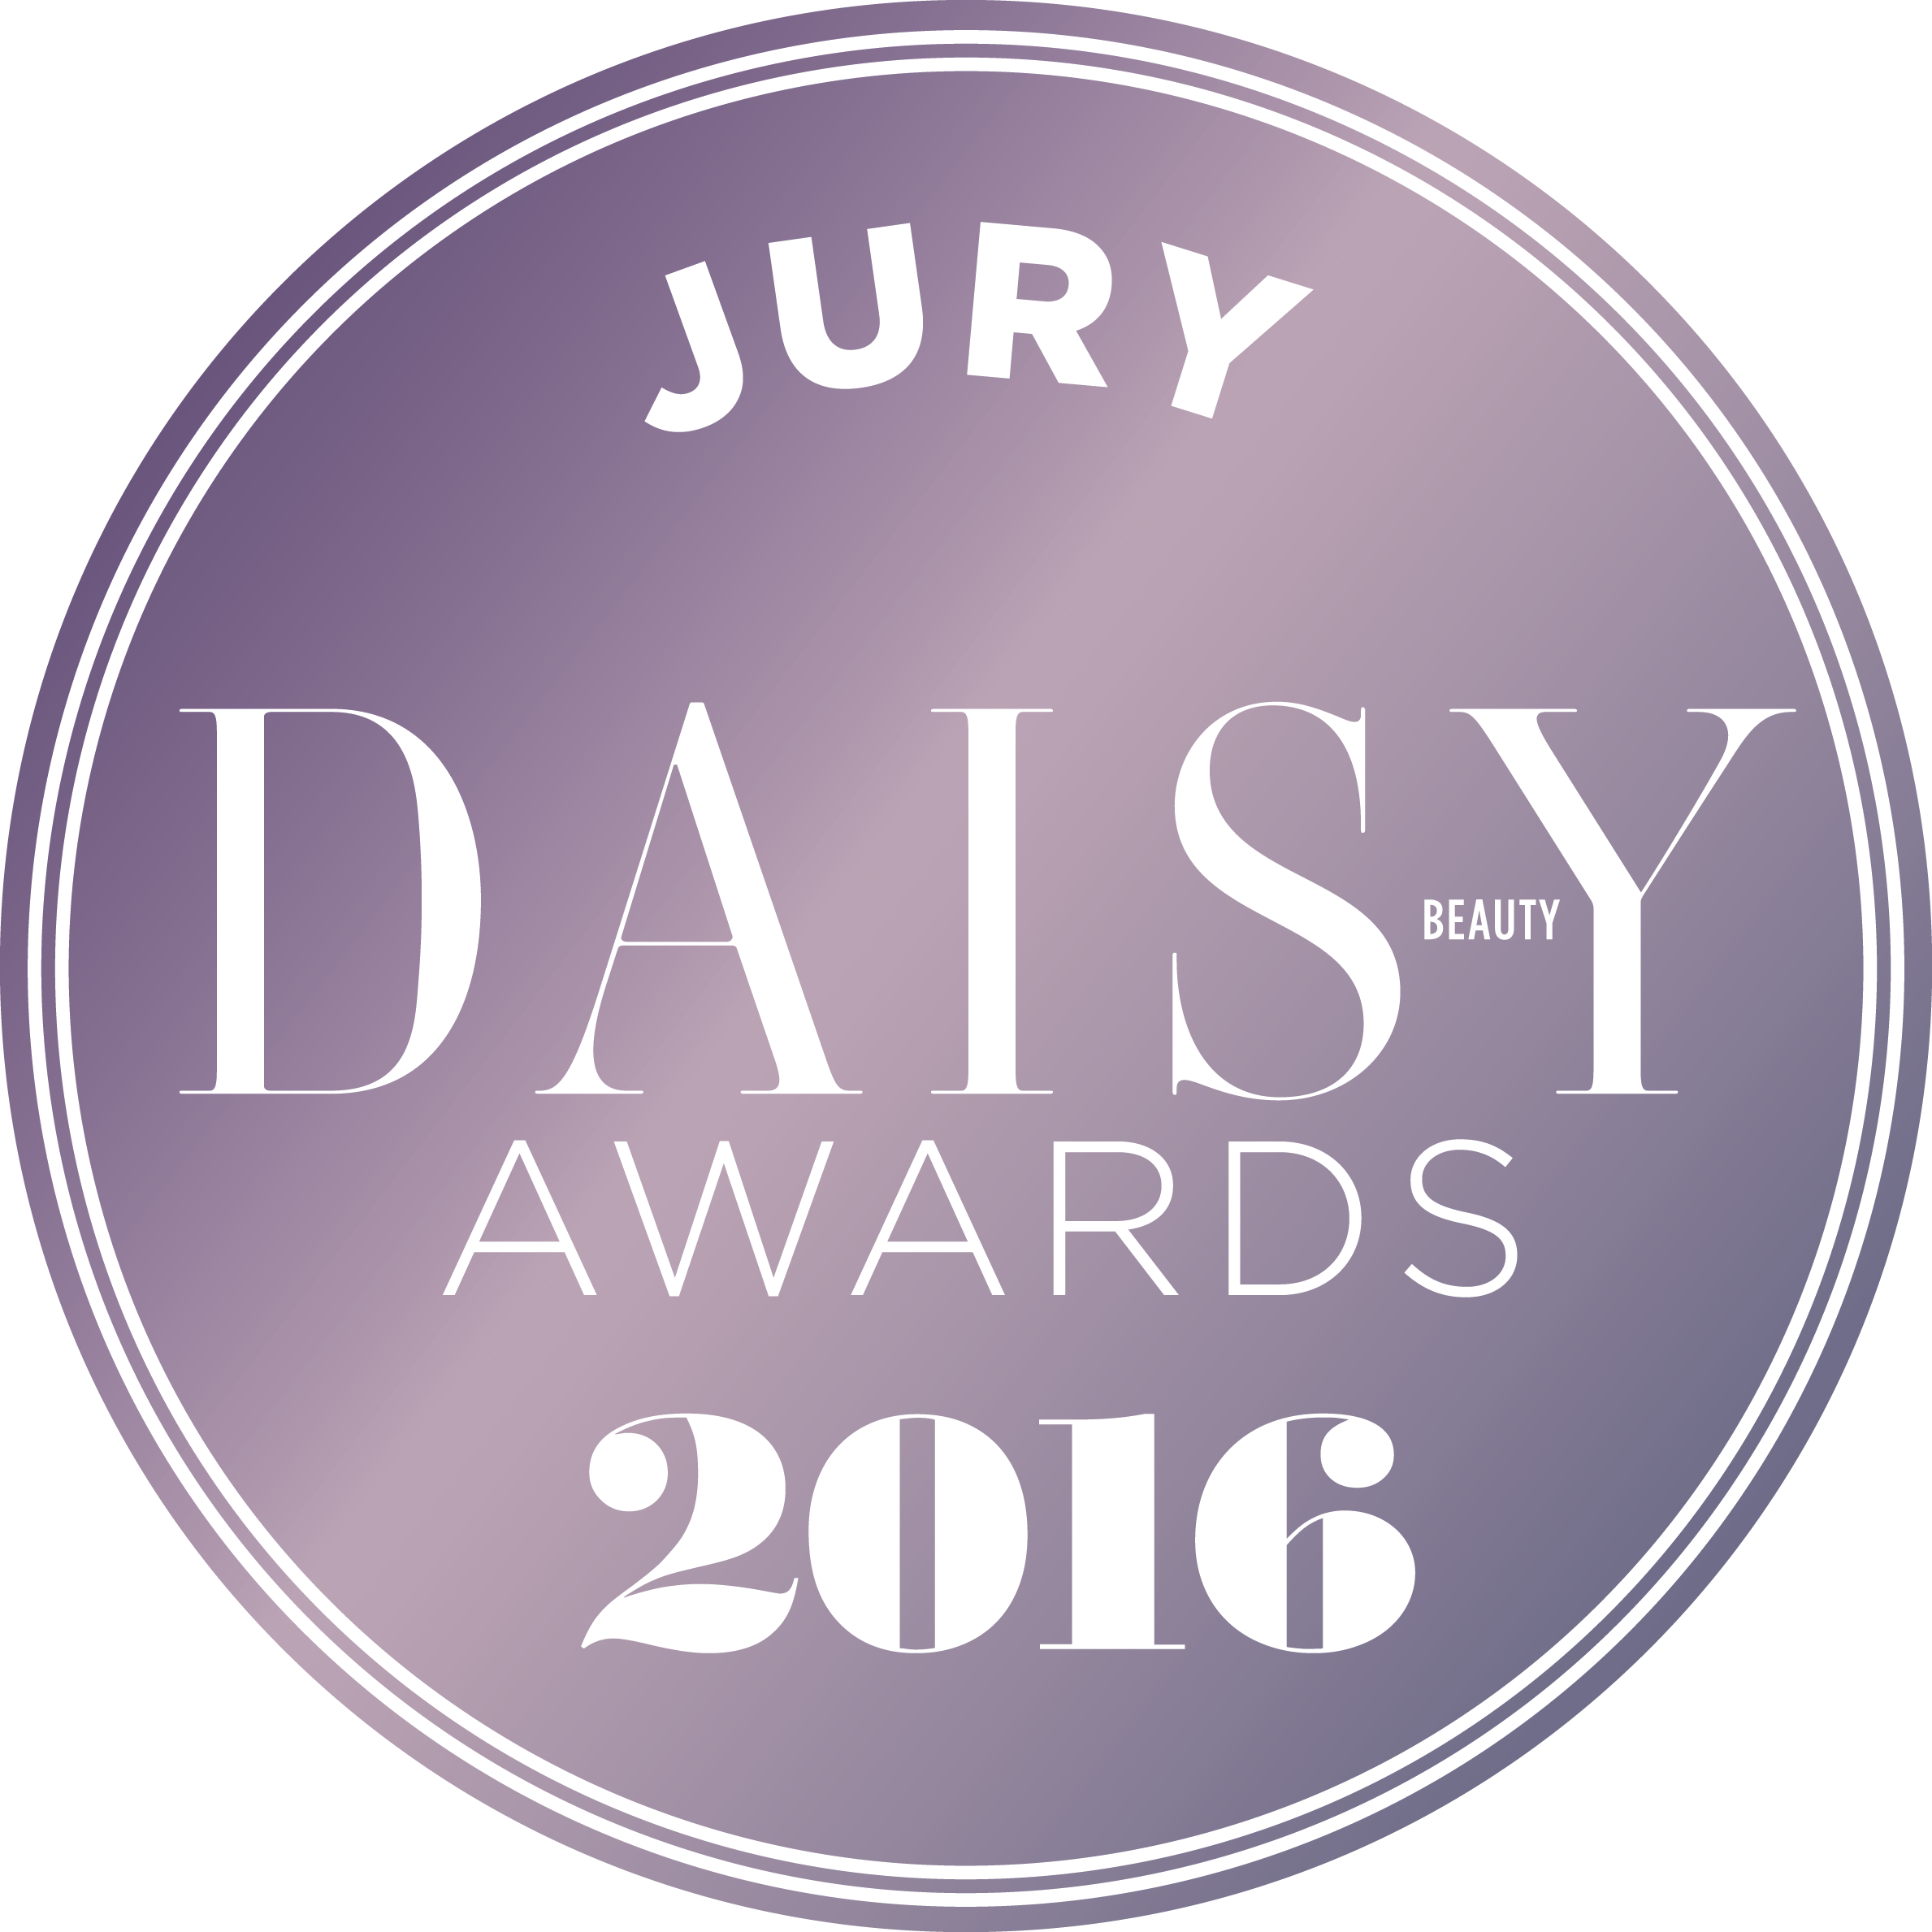 Jury i Daisy Beauty Awards 2016